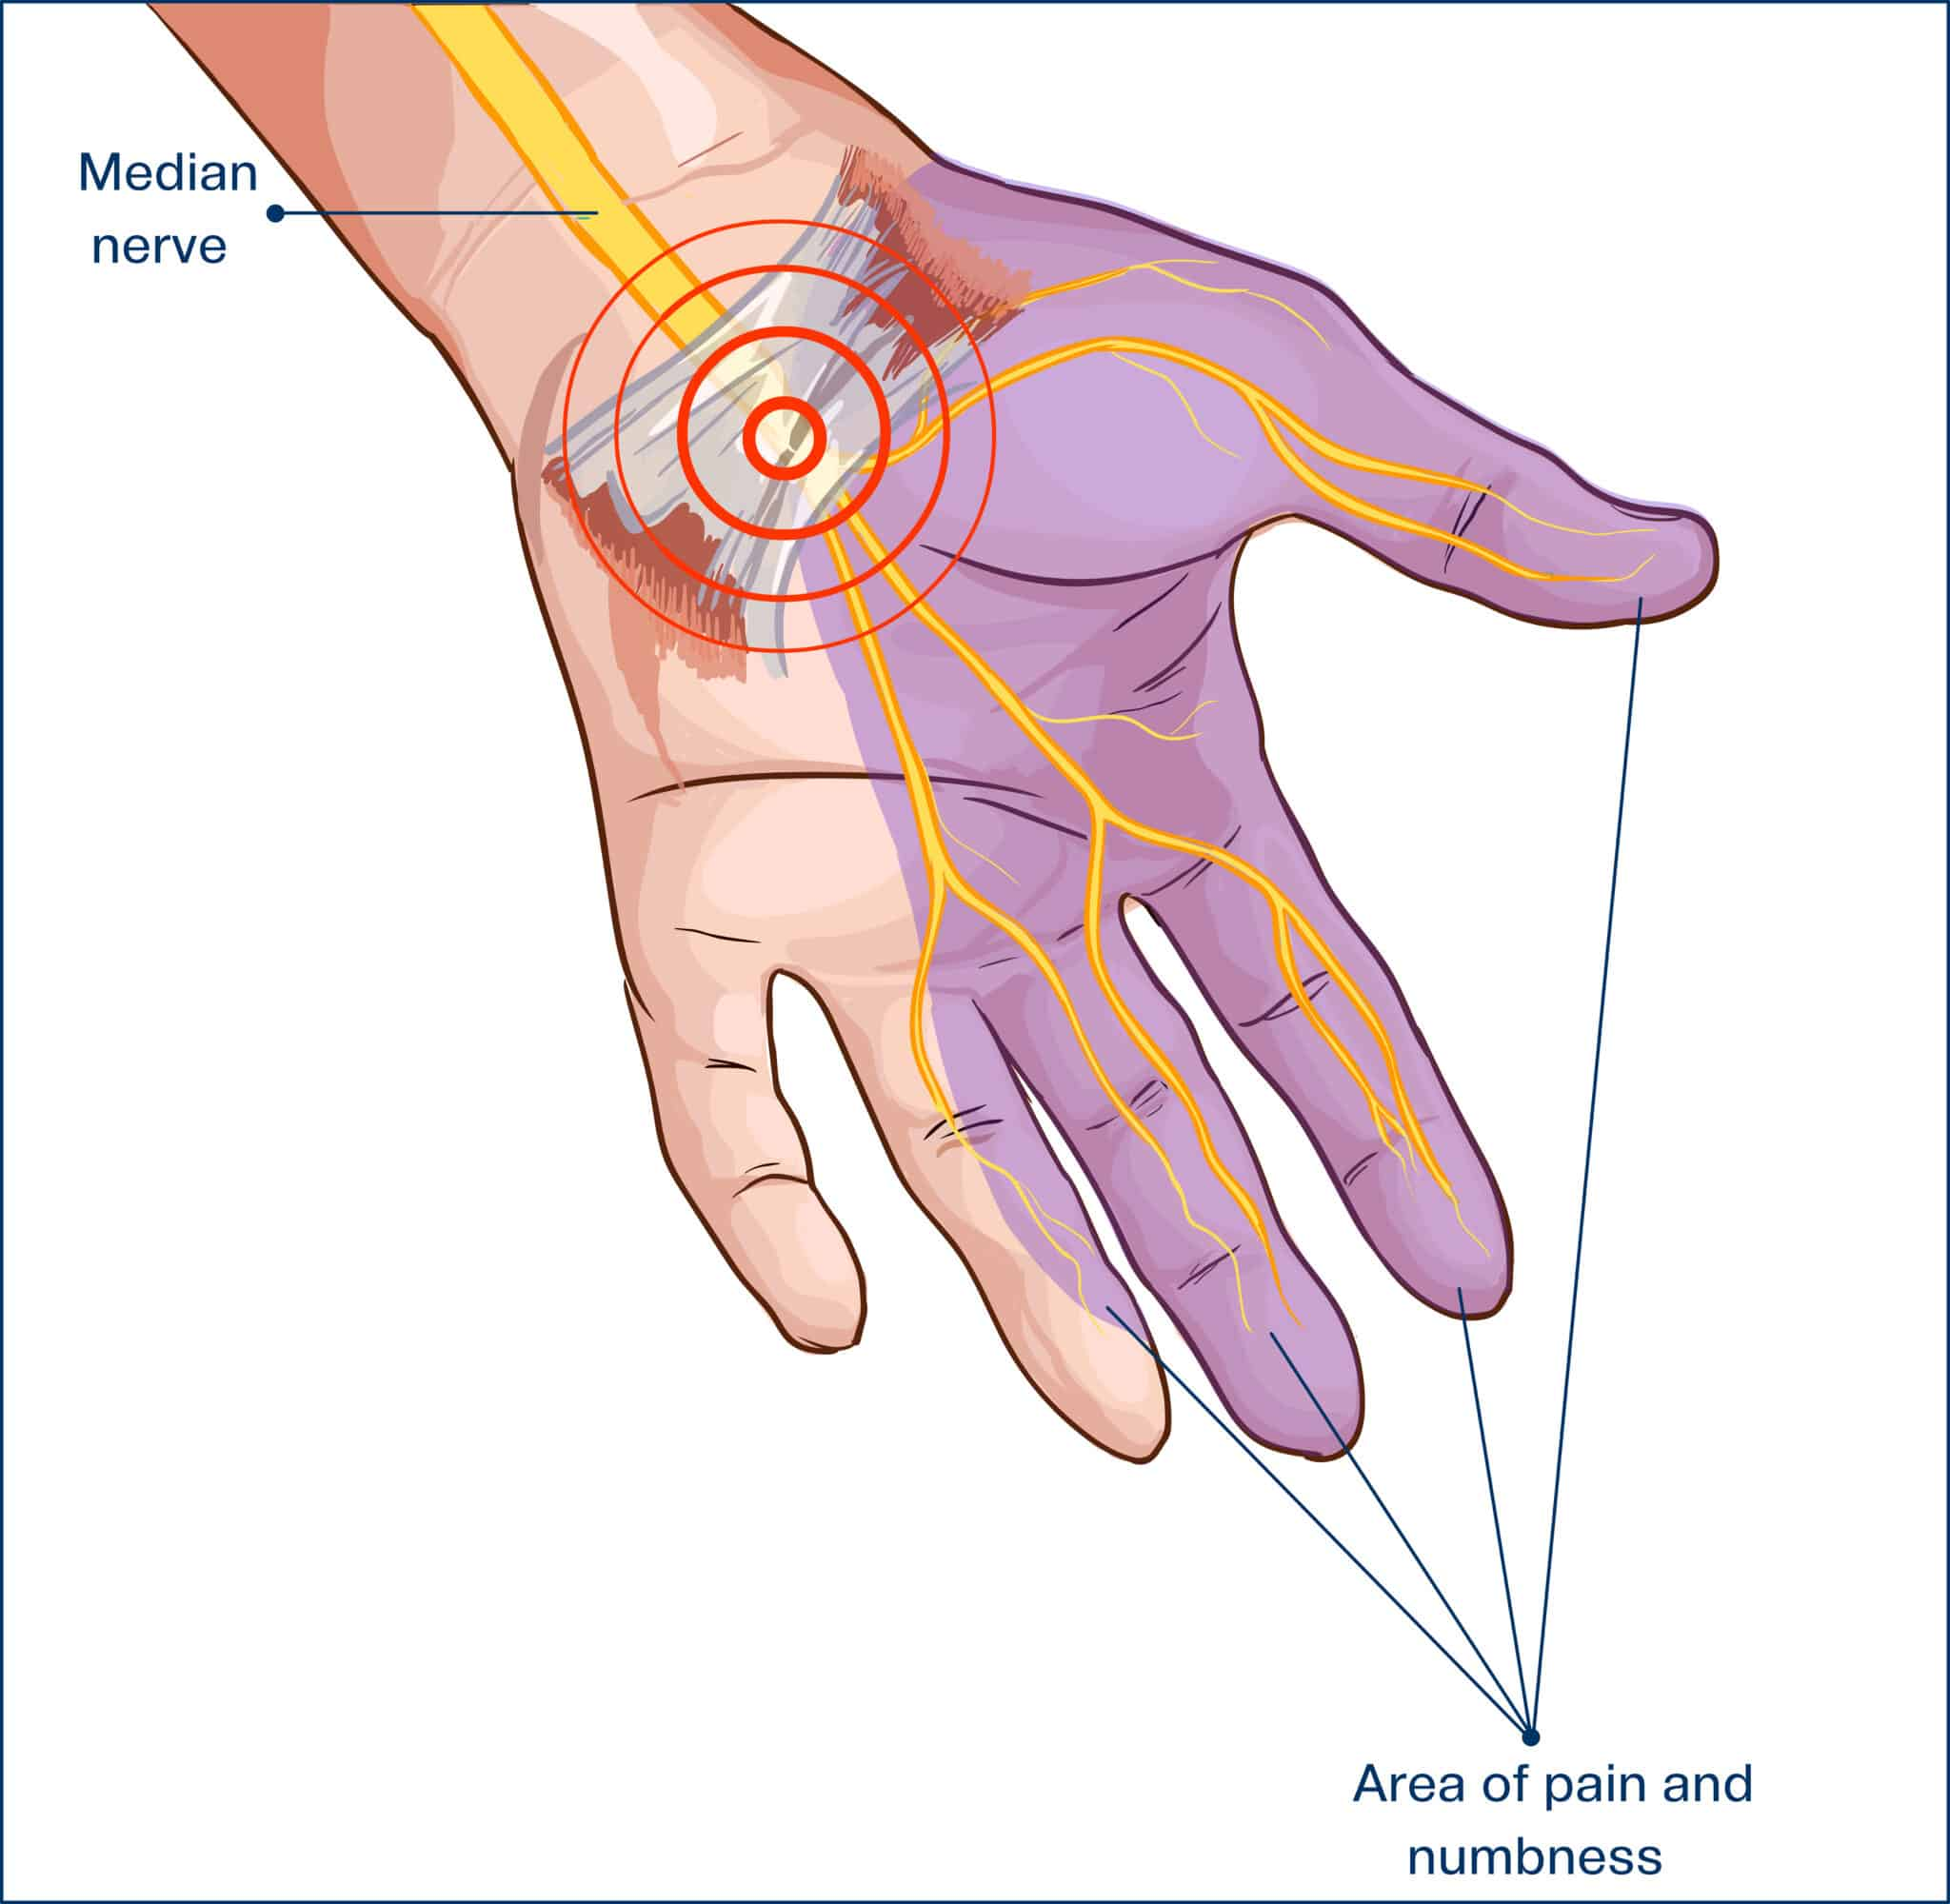 Essential Oils For Carpal Tunnel Syndrome: Are There Better Ways To Treat Carpal Tunnel Other Than Steroids And Surgery?